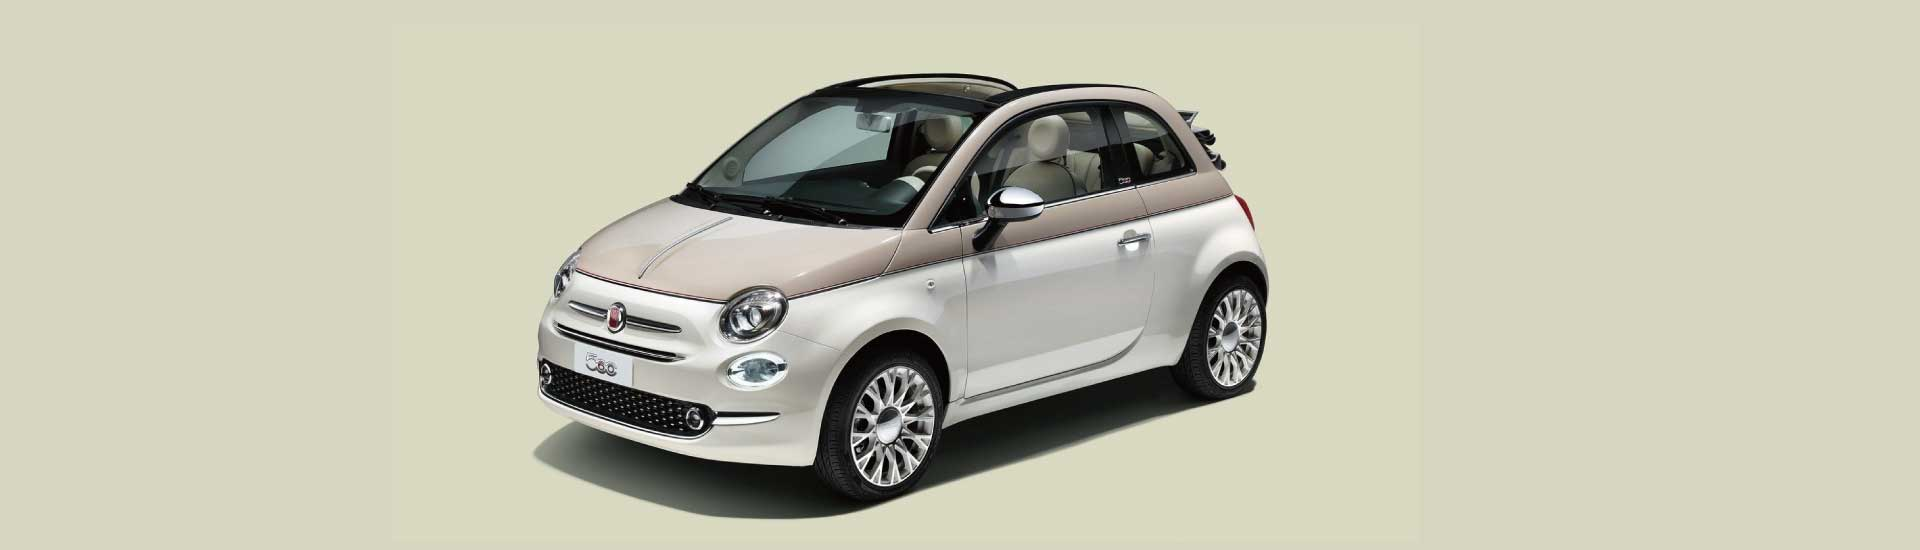 fiat 500c 60th anniversary autoriesen. Black Bedroom Furniture Sets. Home Design Ideas